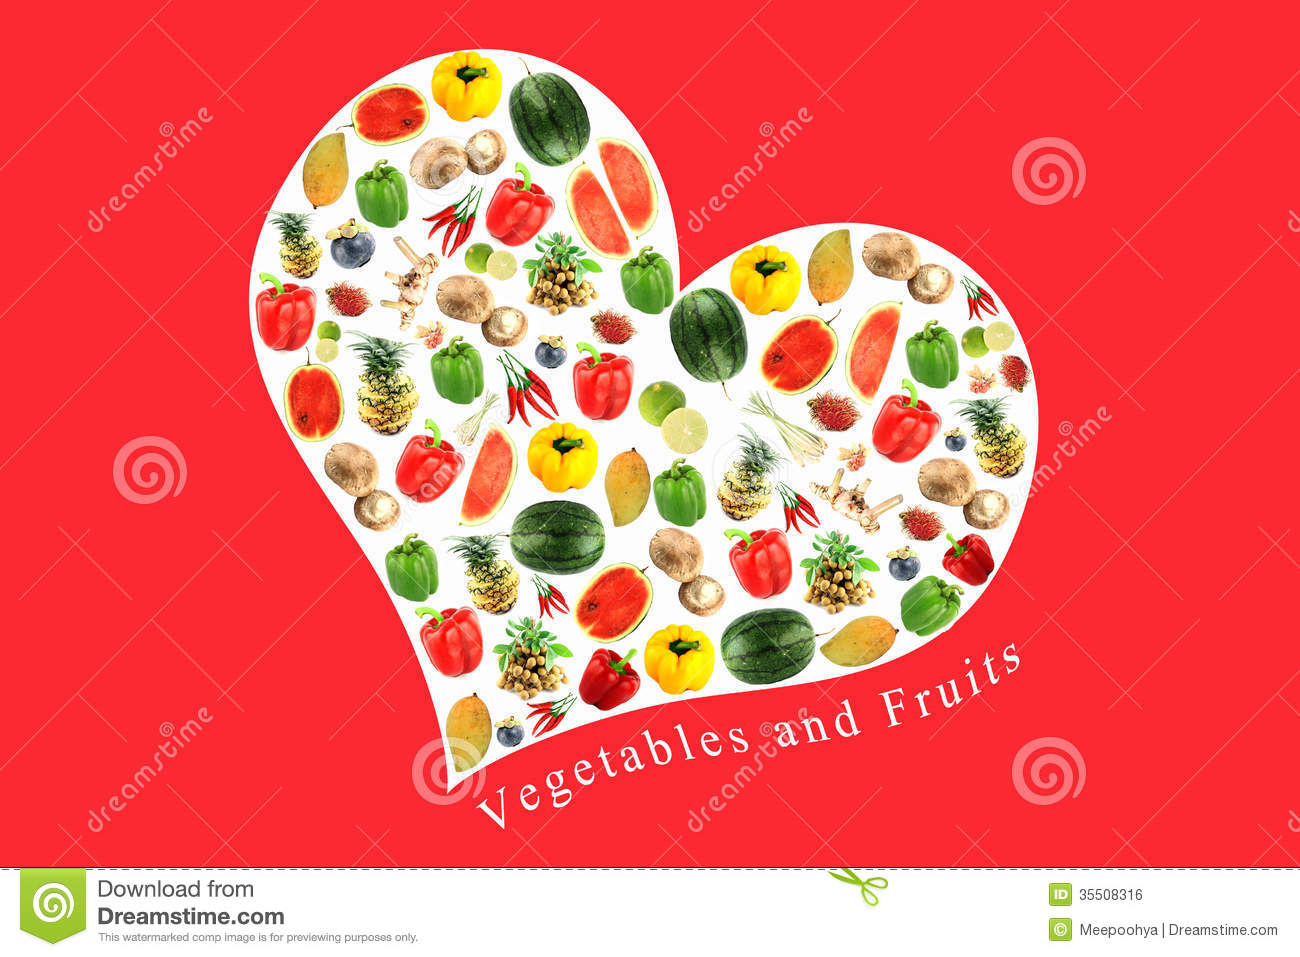 Vegetables And Fruits In White Heart On RED Background. Royalty Free ...